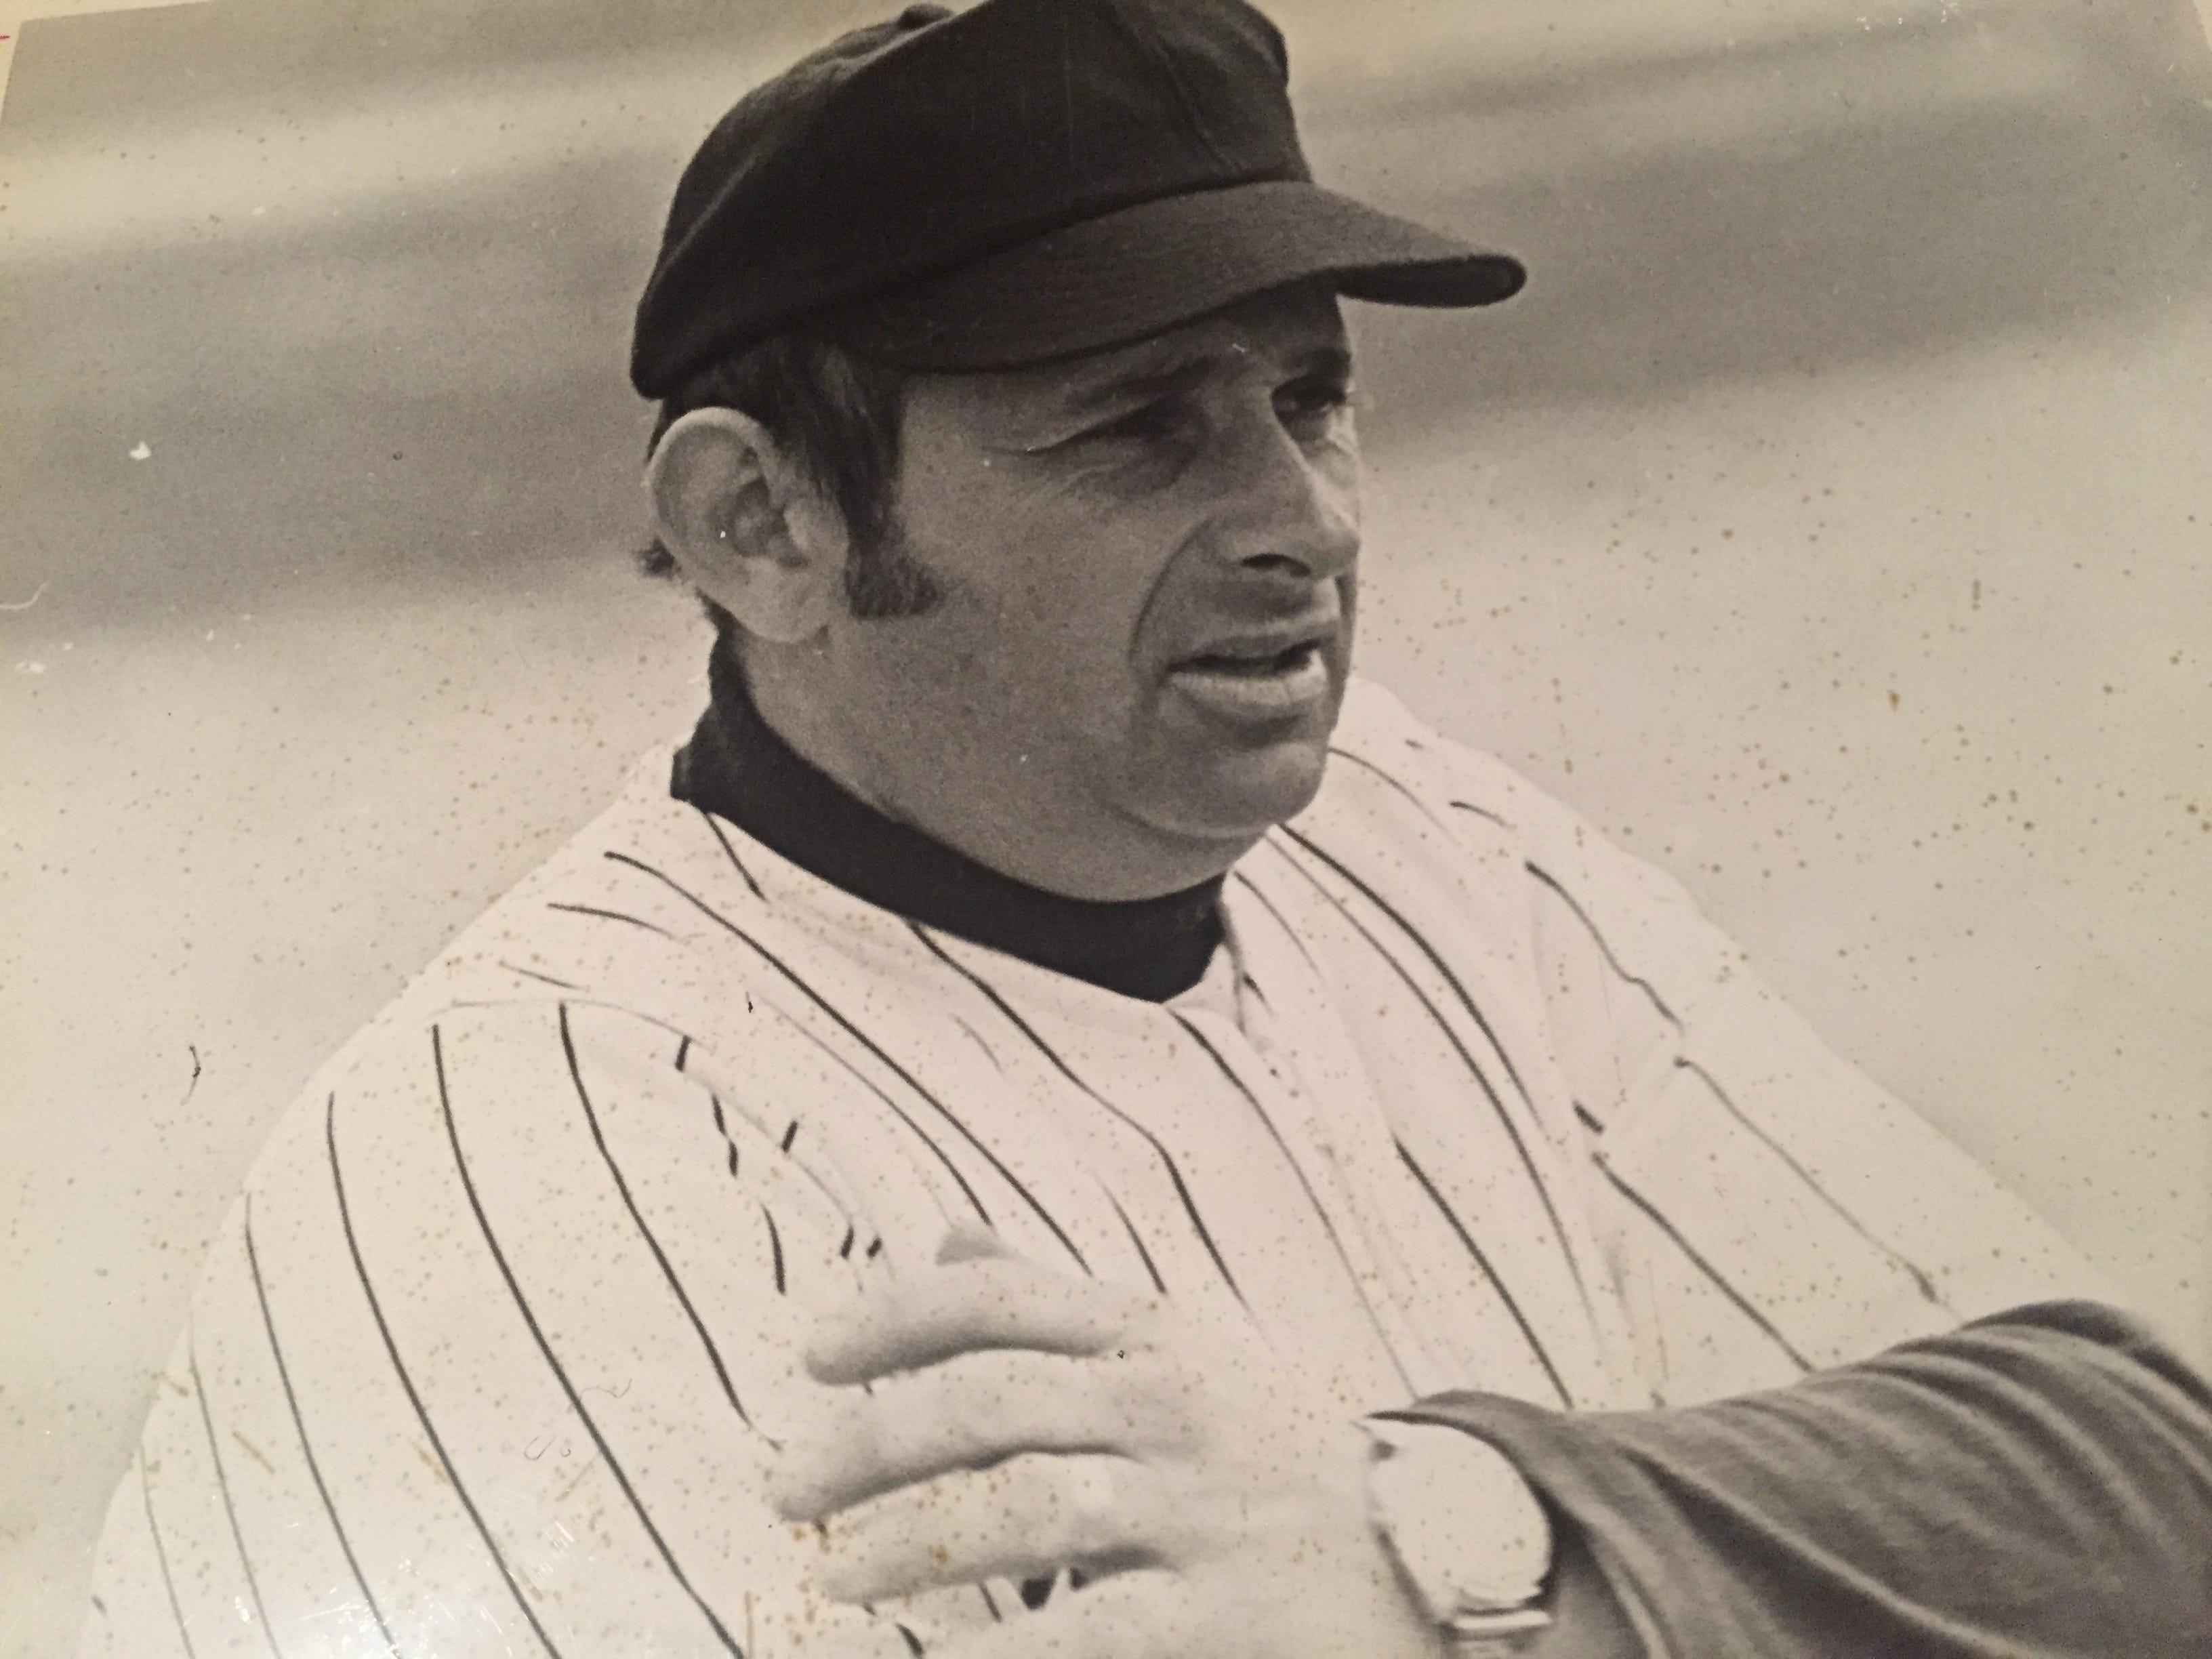 Lakewood coach Stan Liptzin, shown in 1974, saw more than his share of long home runs over the years, including a pair onto the roof at Toms River South in 1967 when he was an assistant at Lakewood under Larry D'Zio.